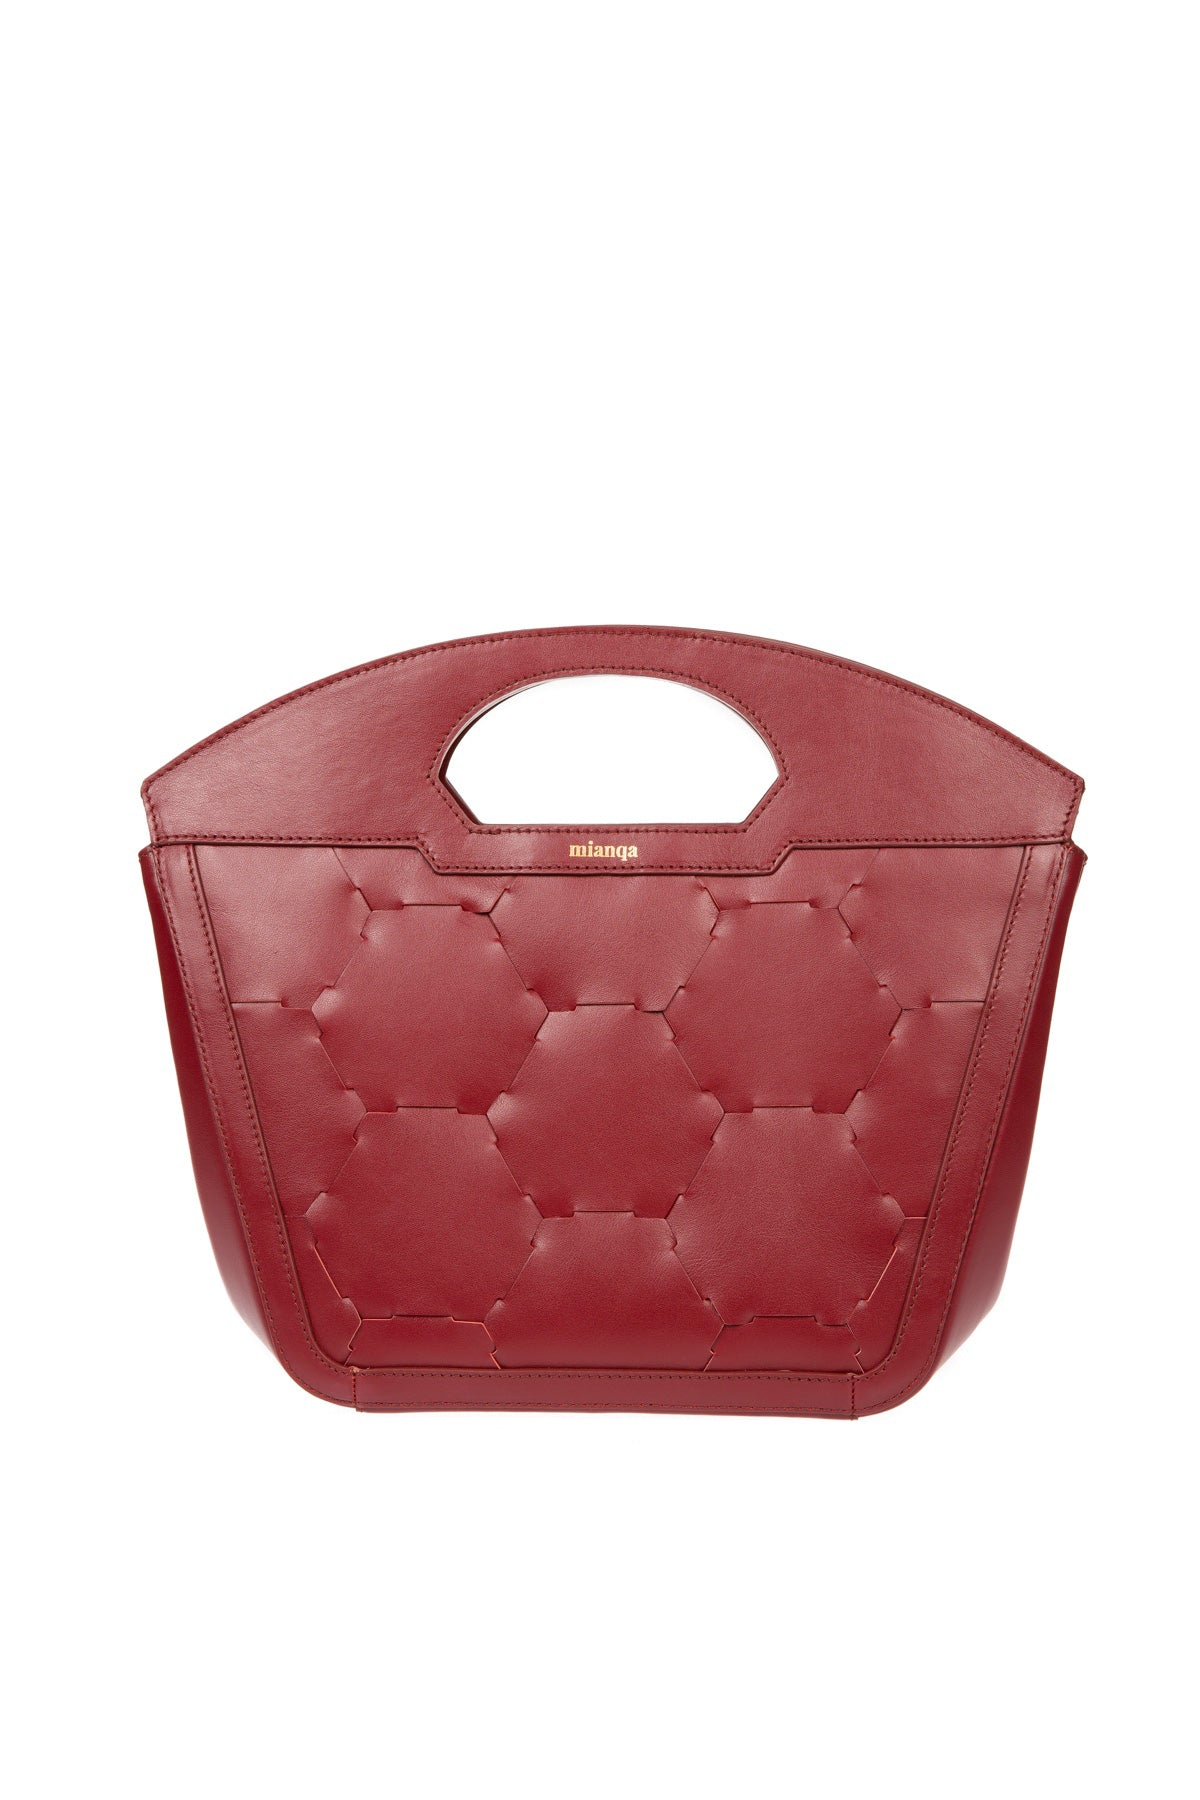 A F I F E | Leather Tote Bag Bordeaux